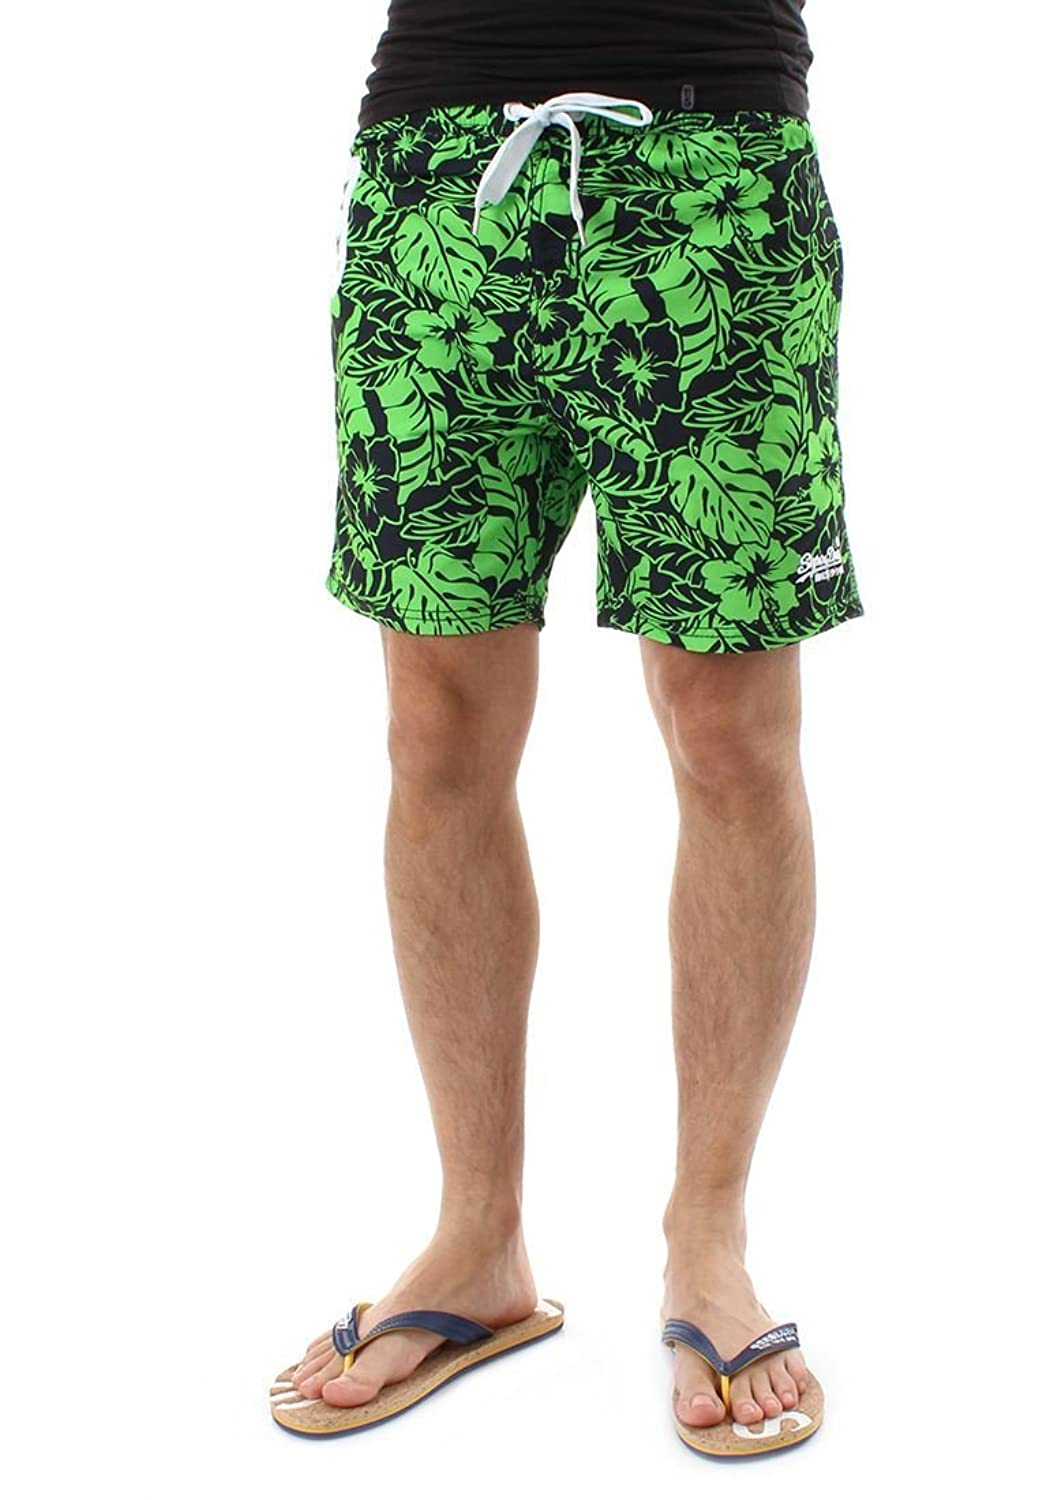 Superdry Men's Premium Print Water Polo Swim Shorts Fluorescent Lime Banana Leaf